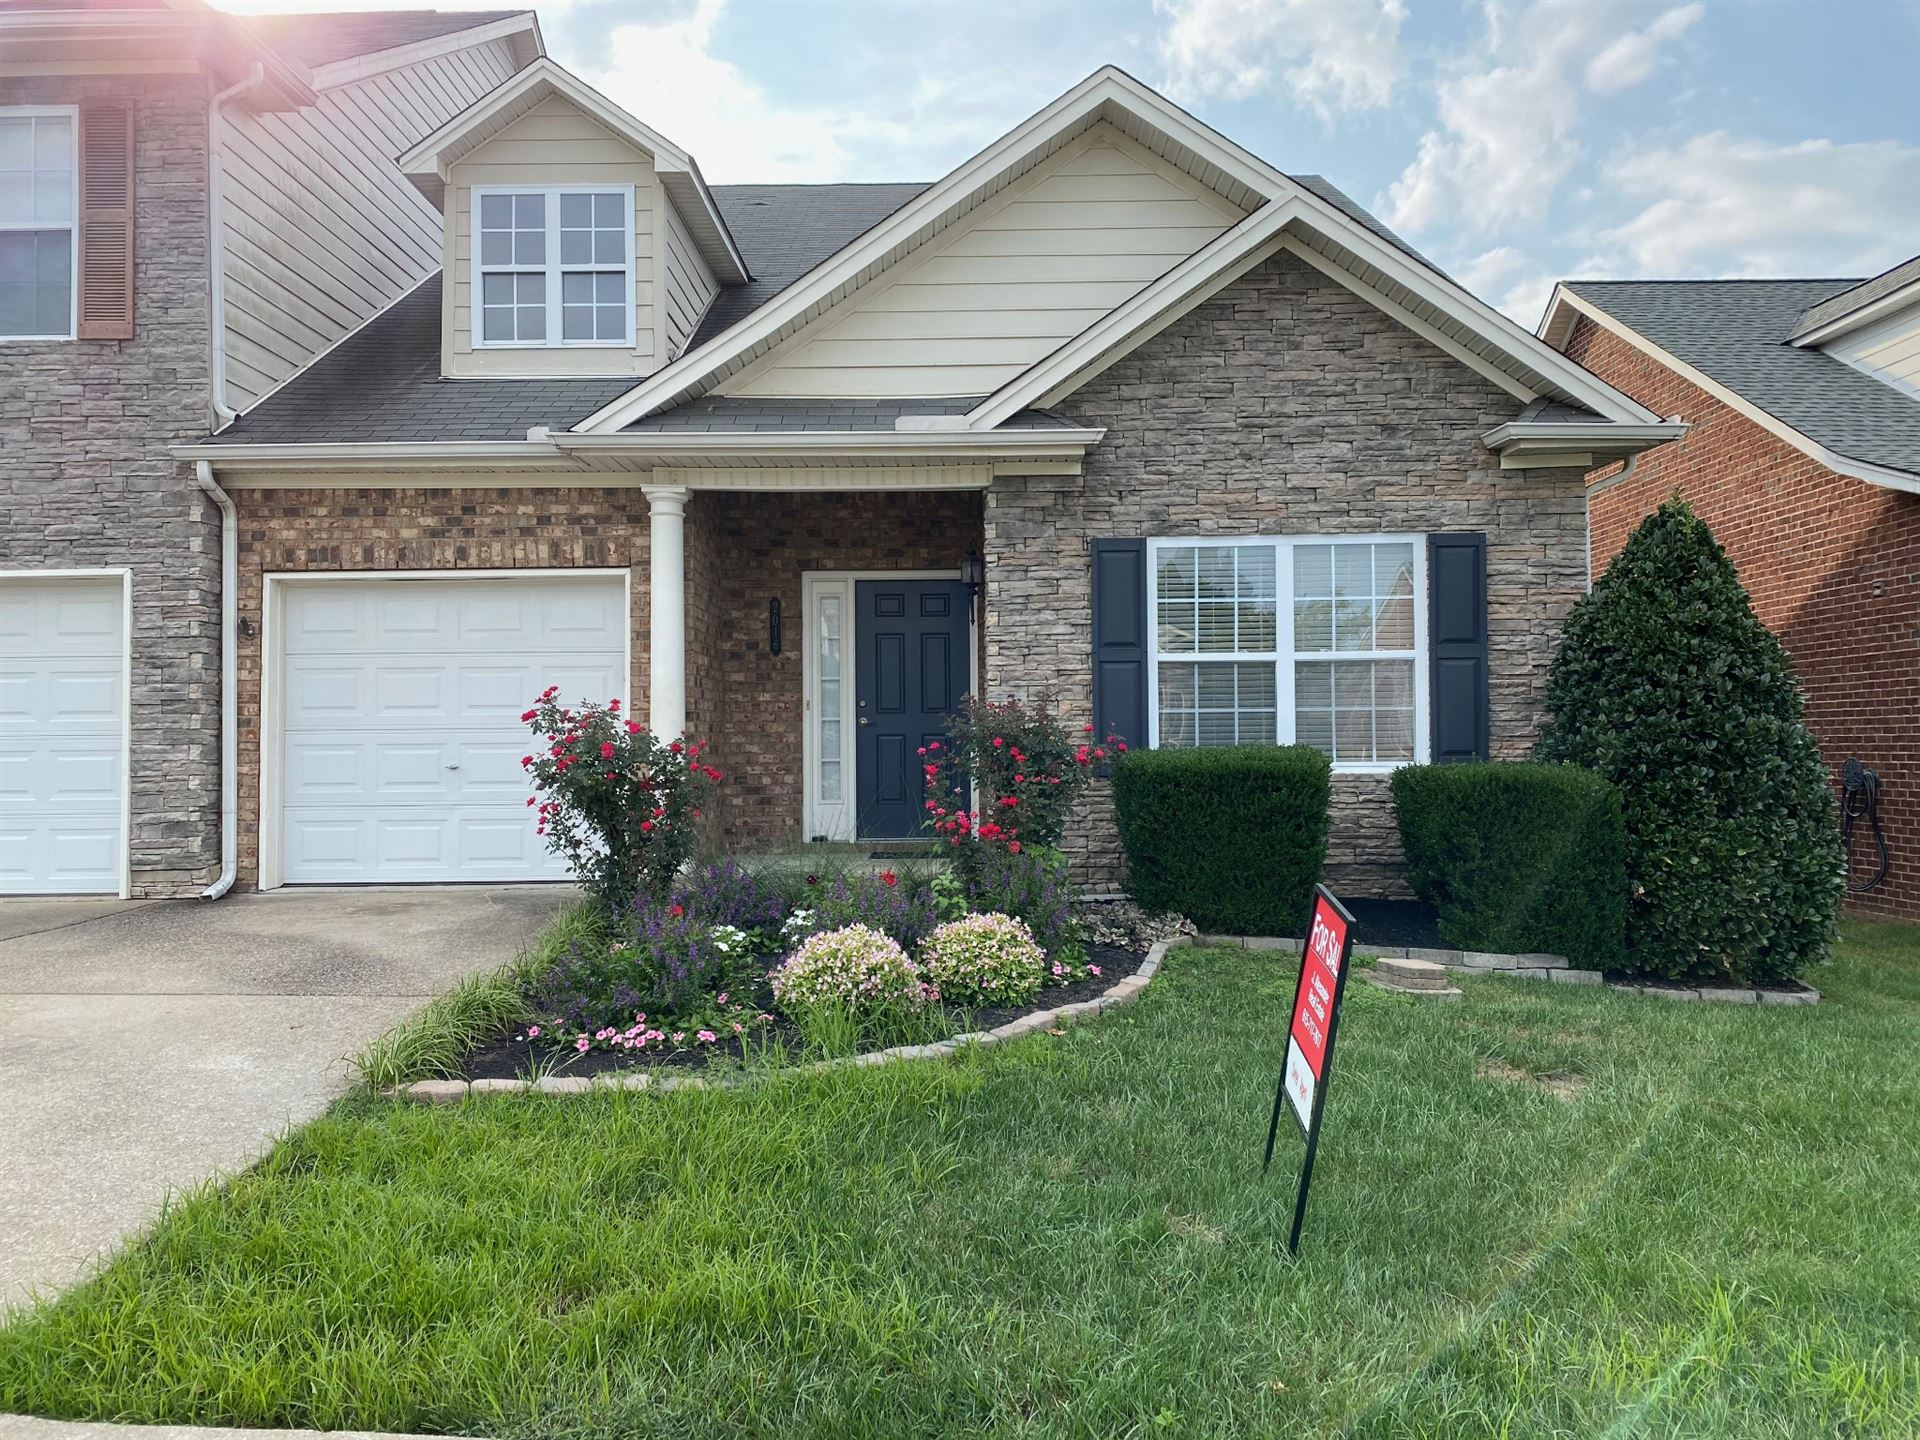 Photo of 2016 Morrison Ave, Spring Hill, TN 37174 (MLS # 2190810)